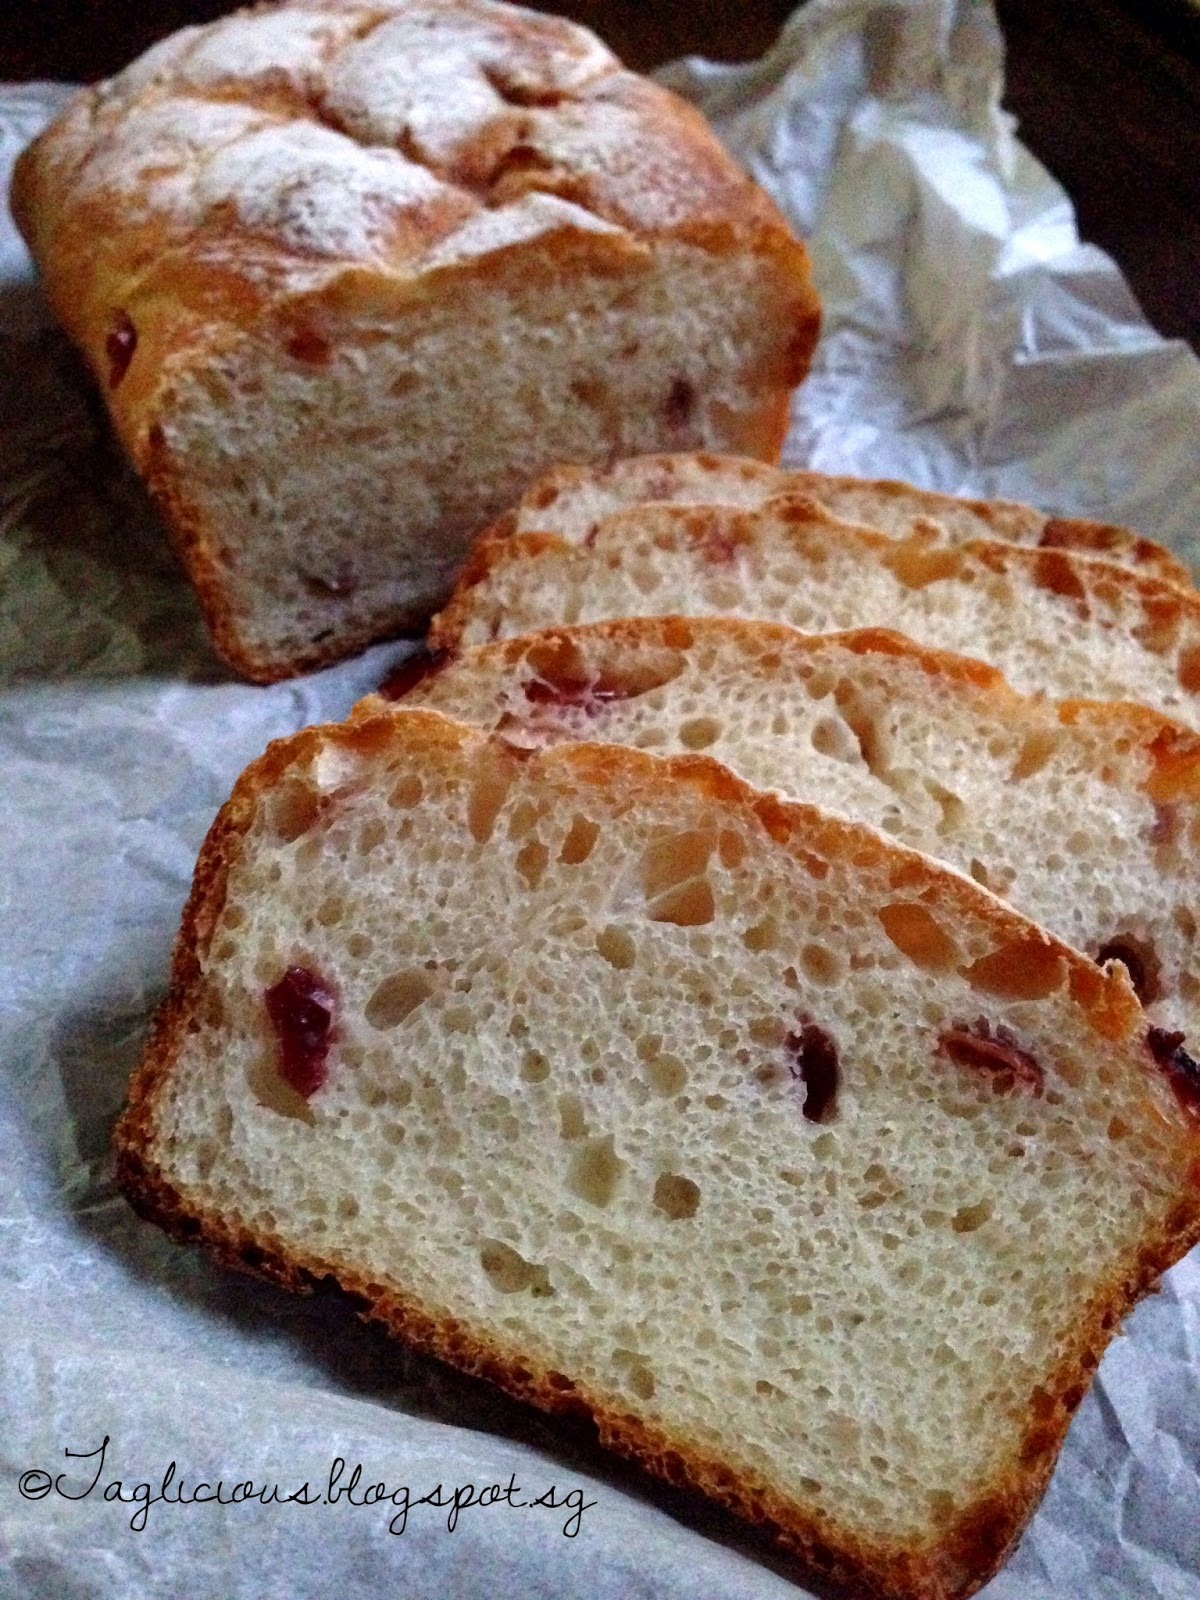 TAGlicious: A nice loaf of Cranberry bread